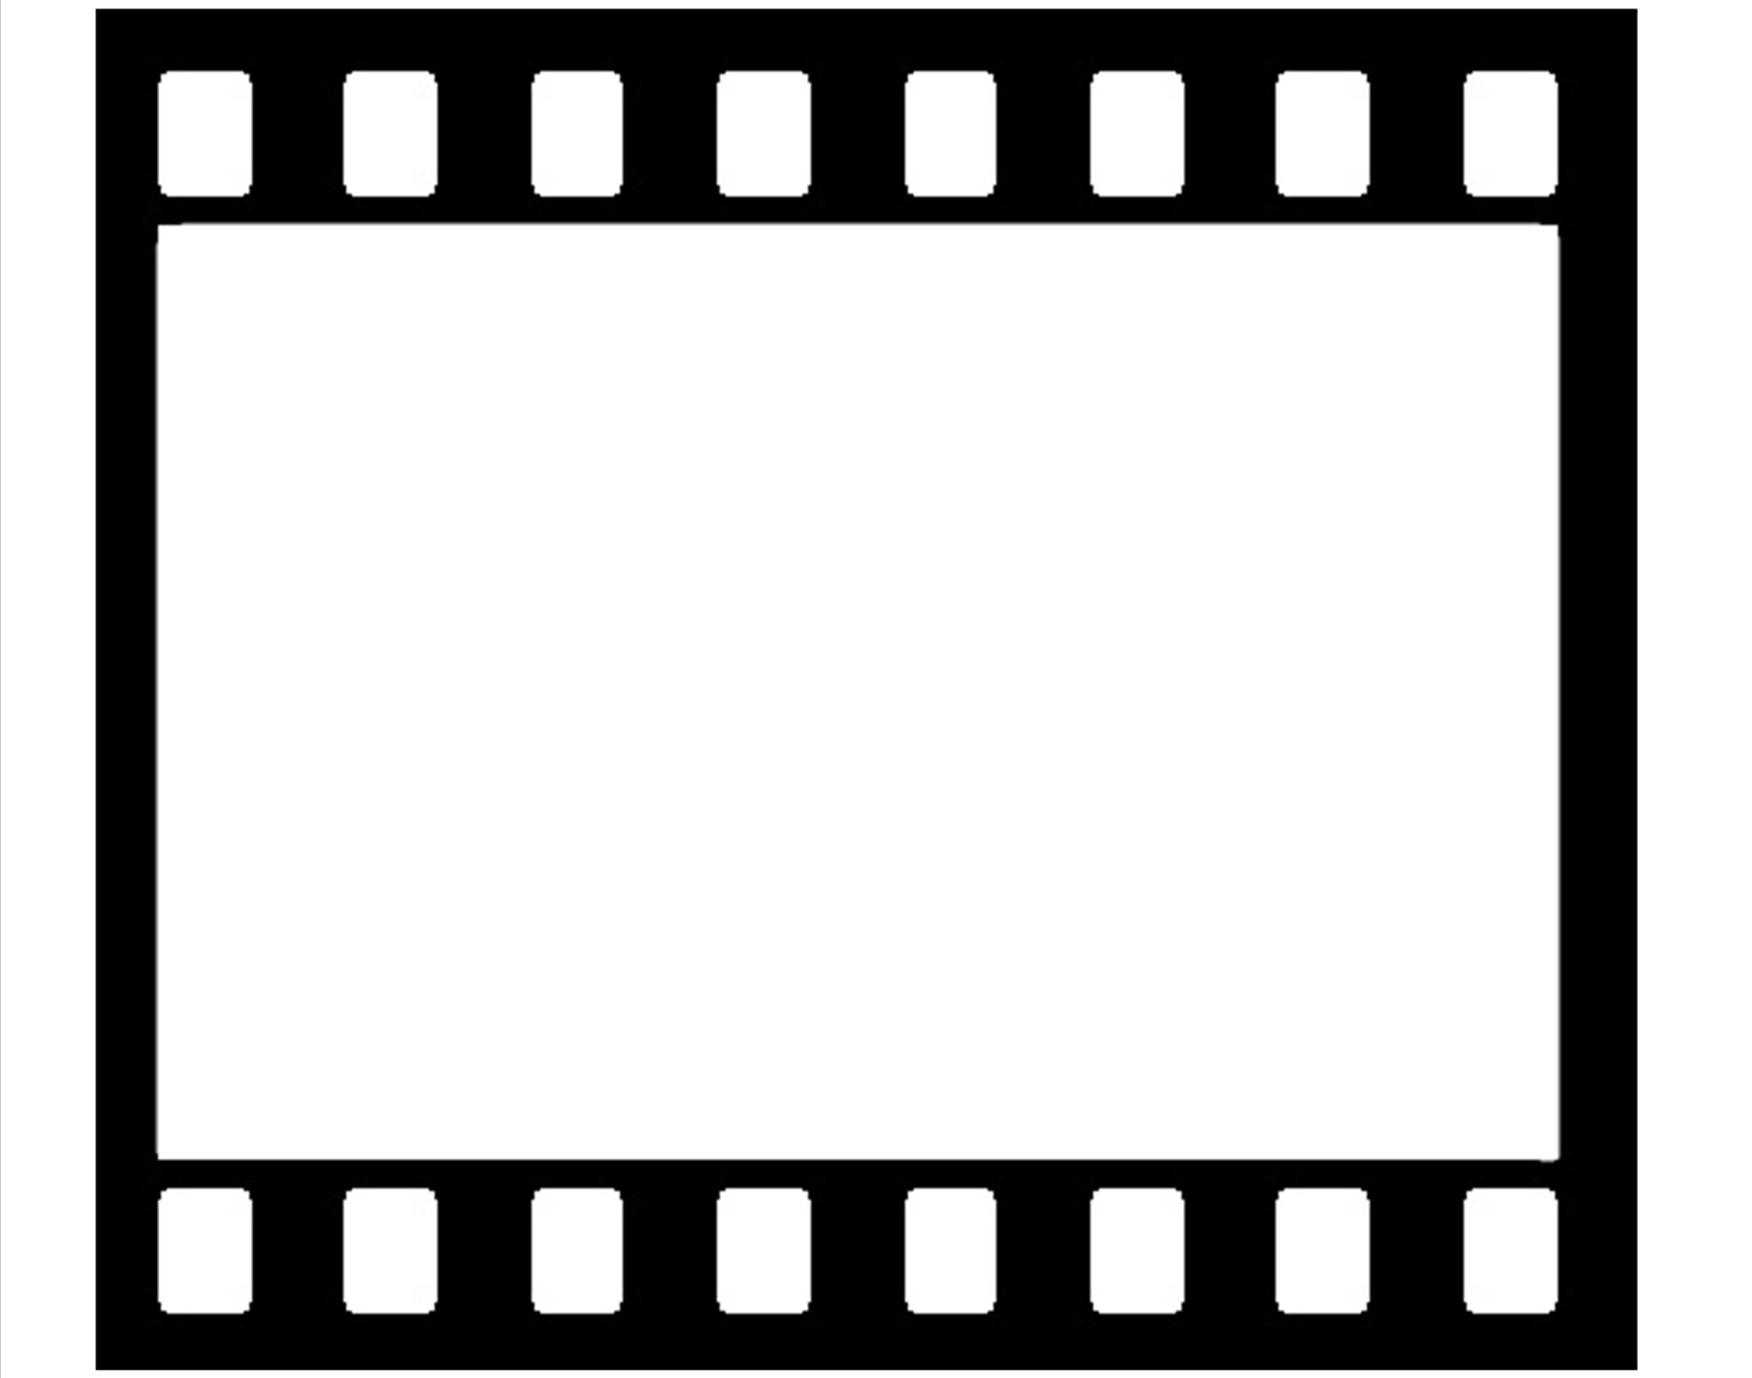 Movie Film Strip Clipart   Free Clip Art Images